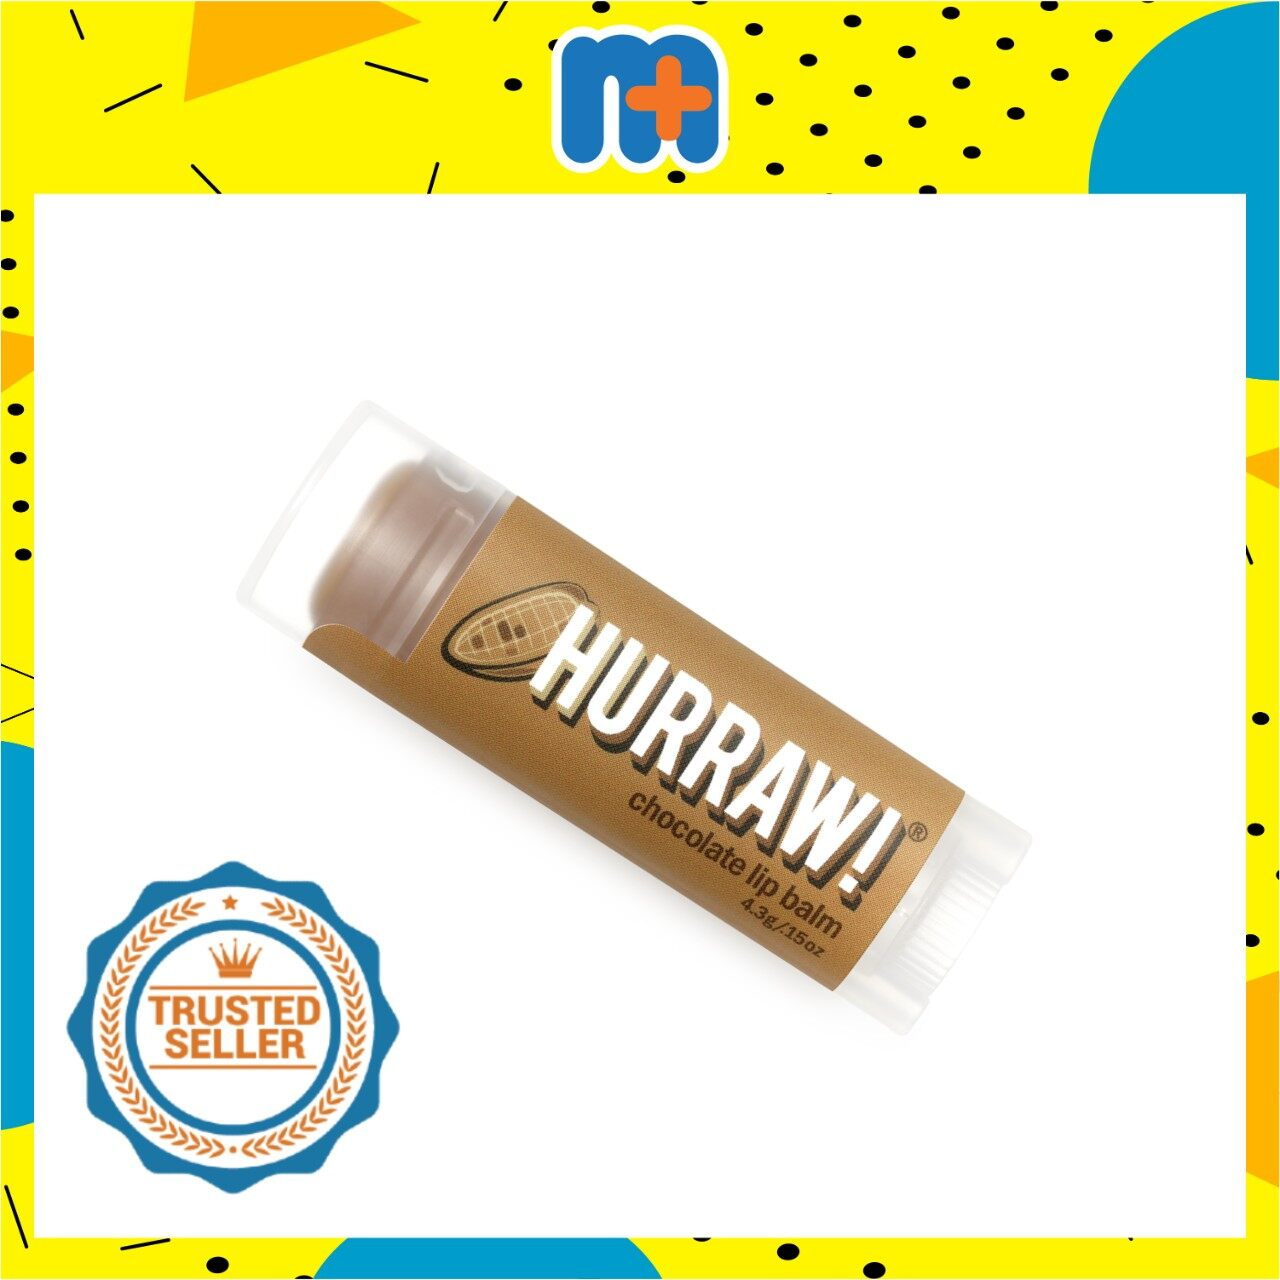 [MPLUS] HURRAW CHOCOLATE LIP BALM 4.8G